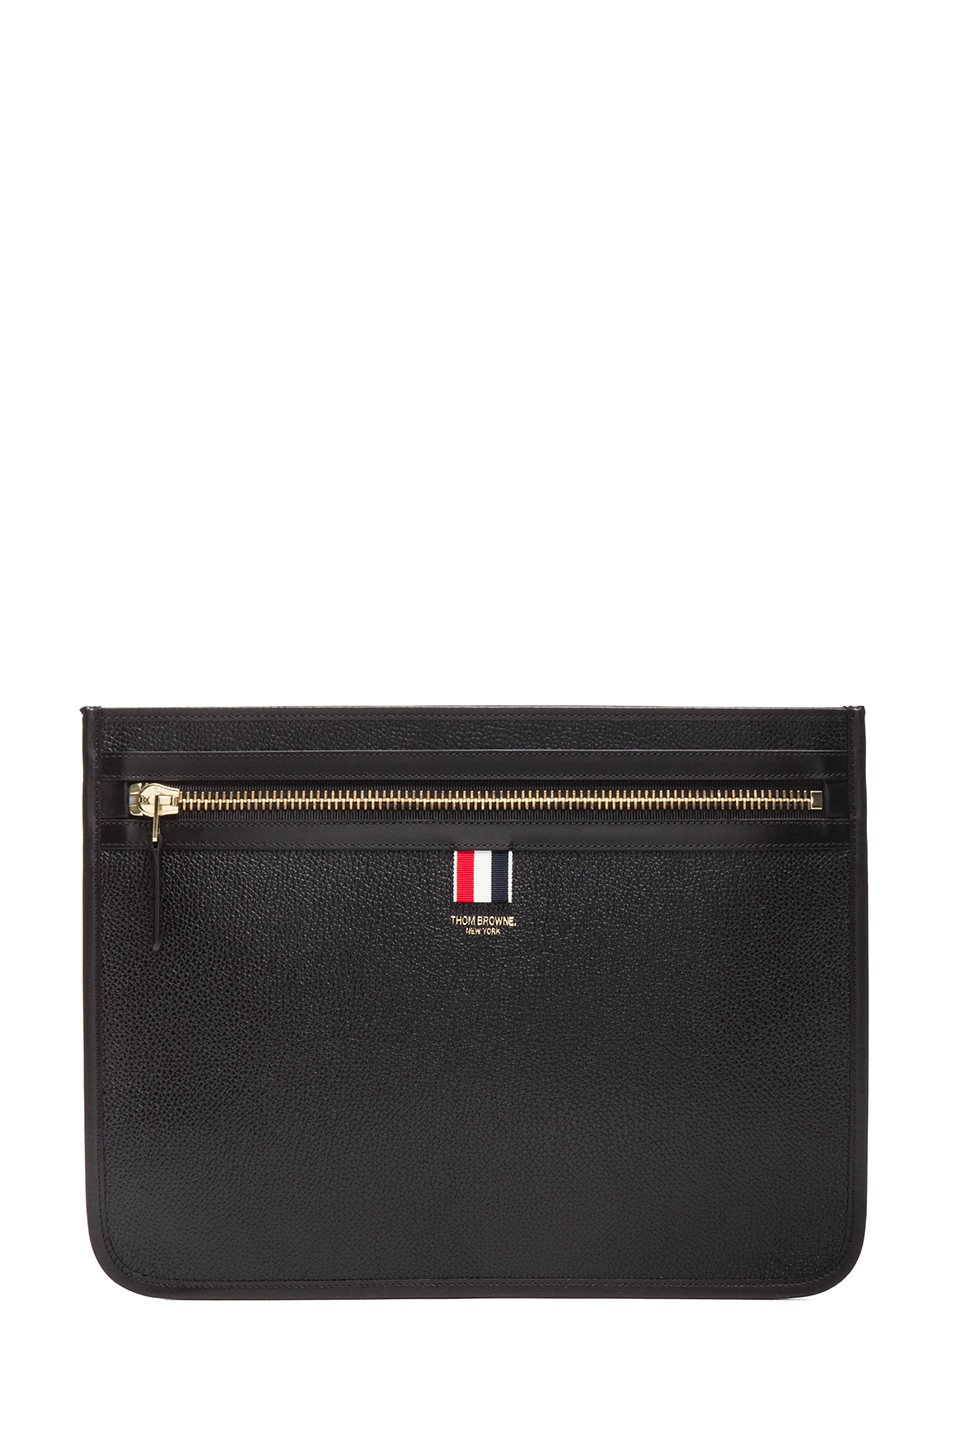 Small Leather Goods - Document holders Thom Browne afZfvHm